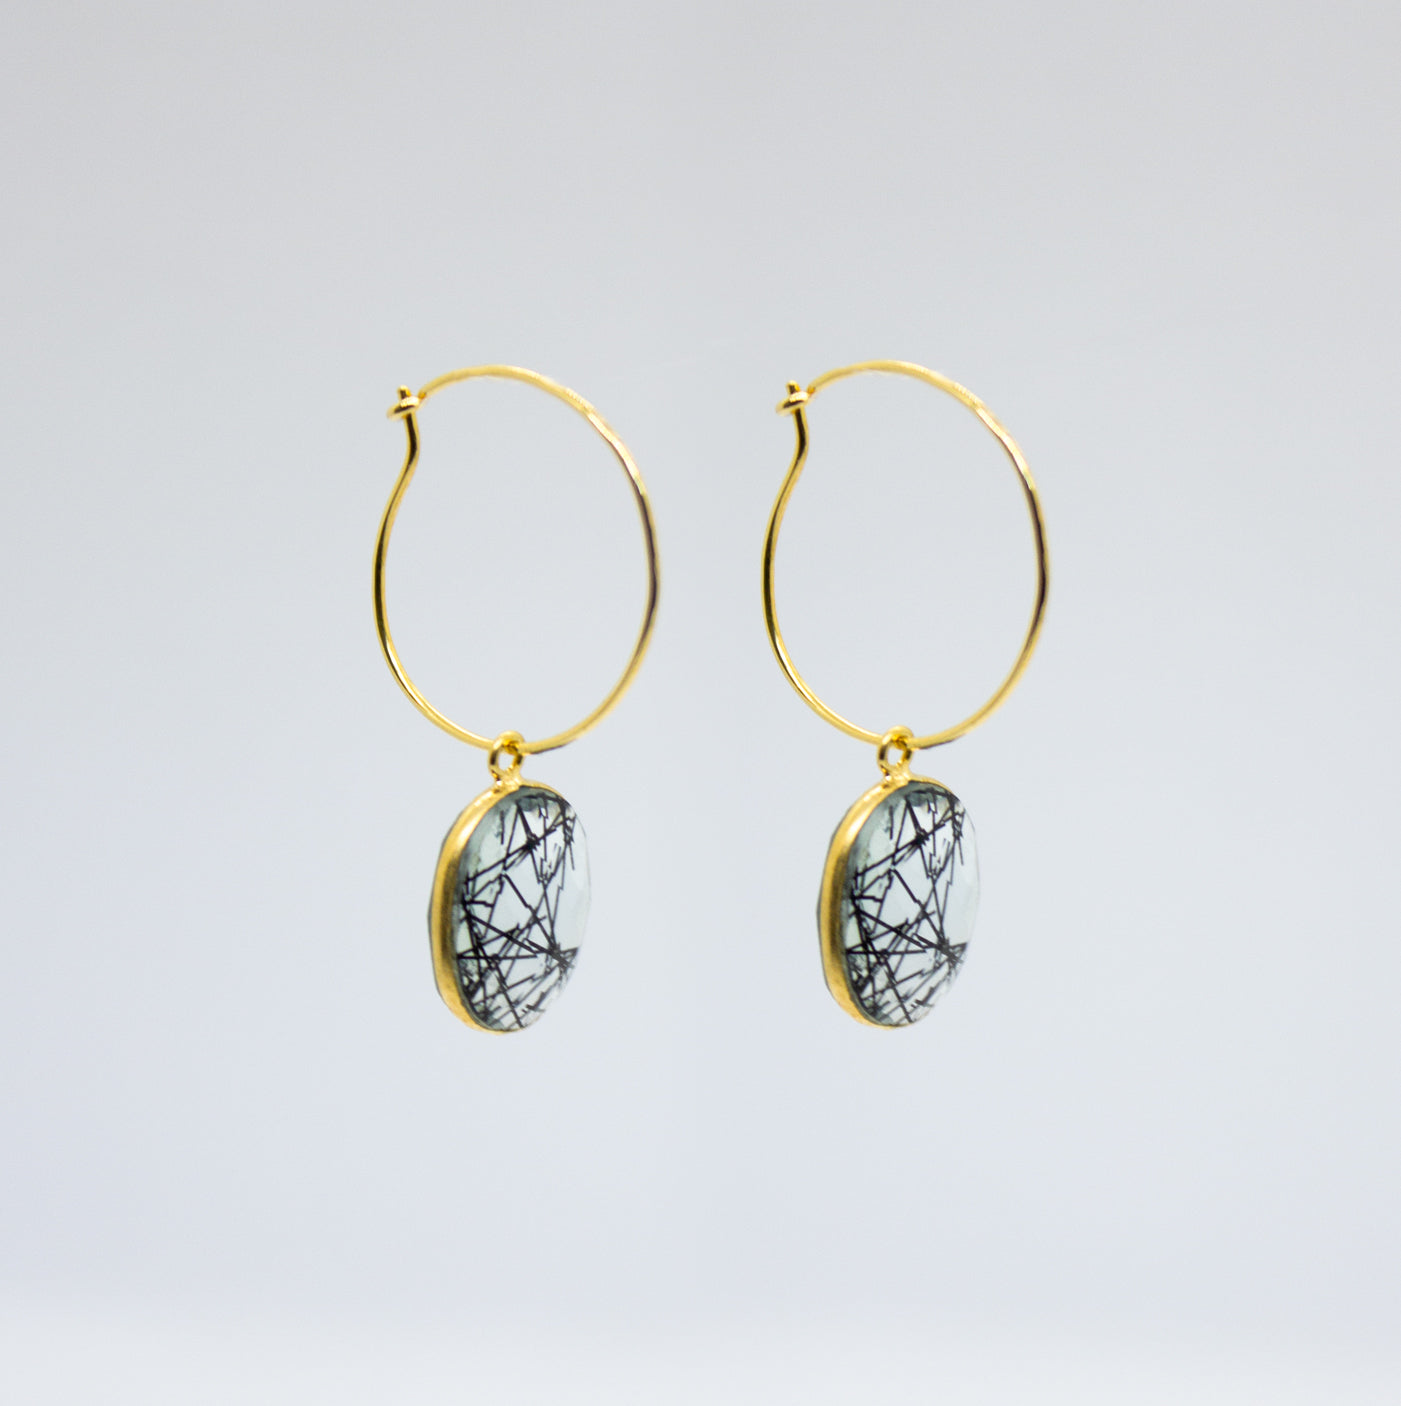 Earrings with Hoop and Black Gemstone Charm